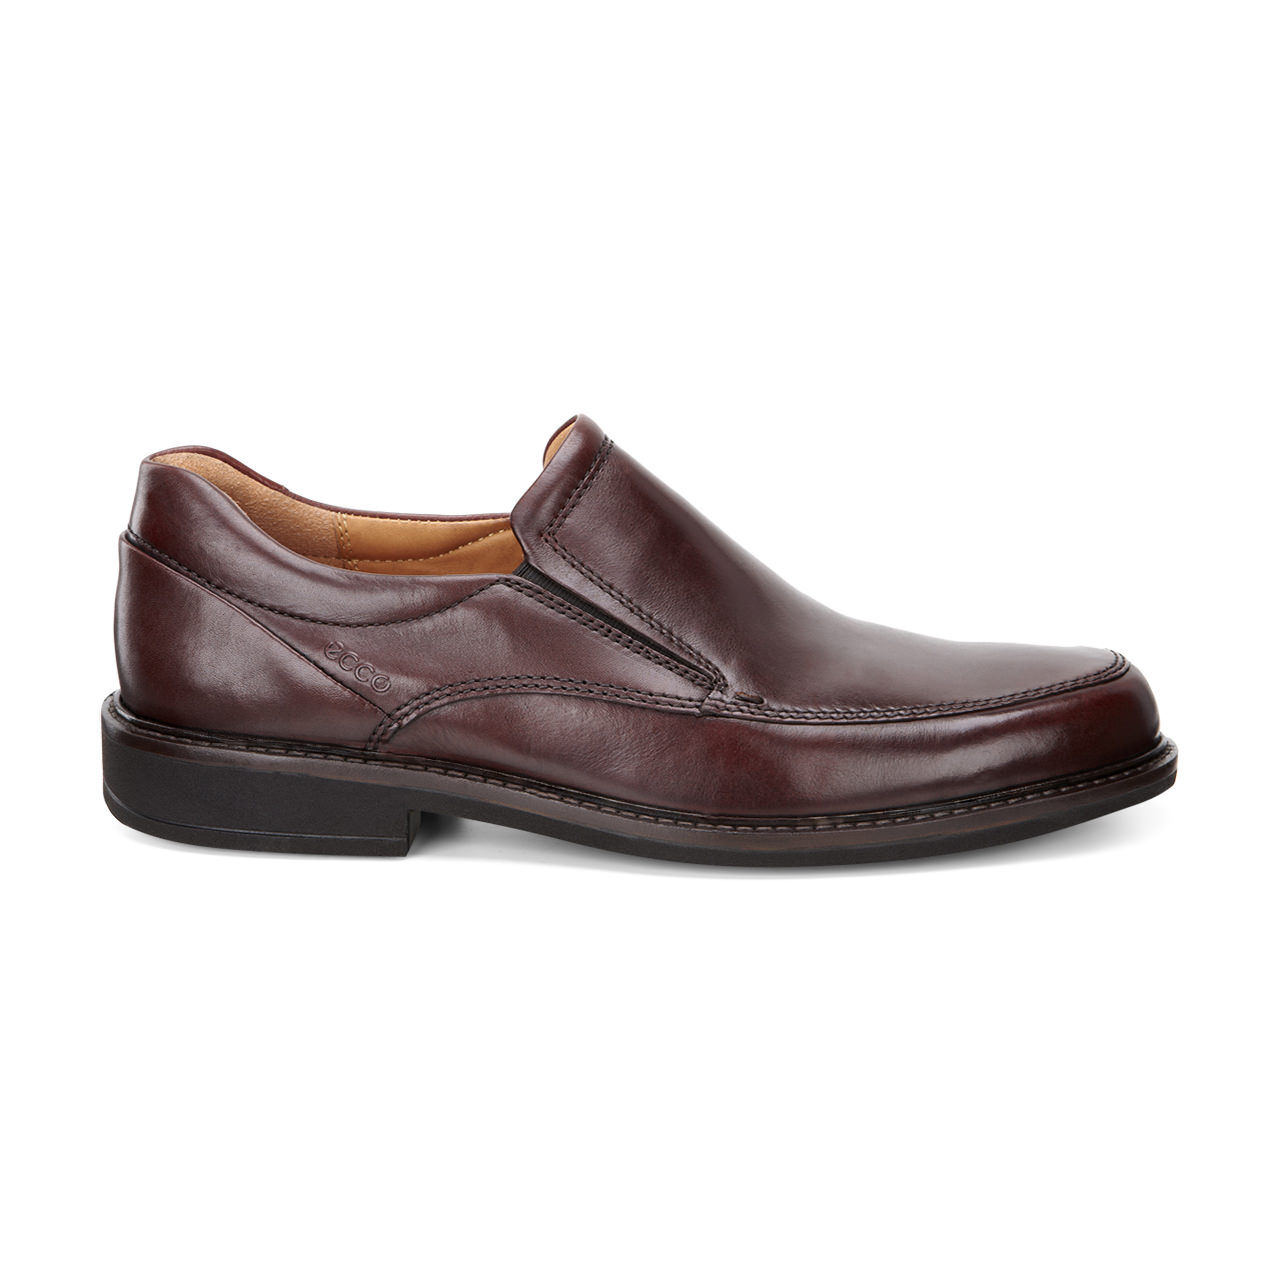 ECCO Holton Apron Toe Slip On | Men